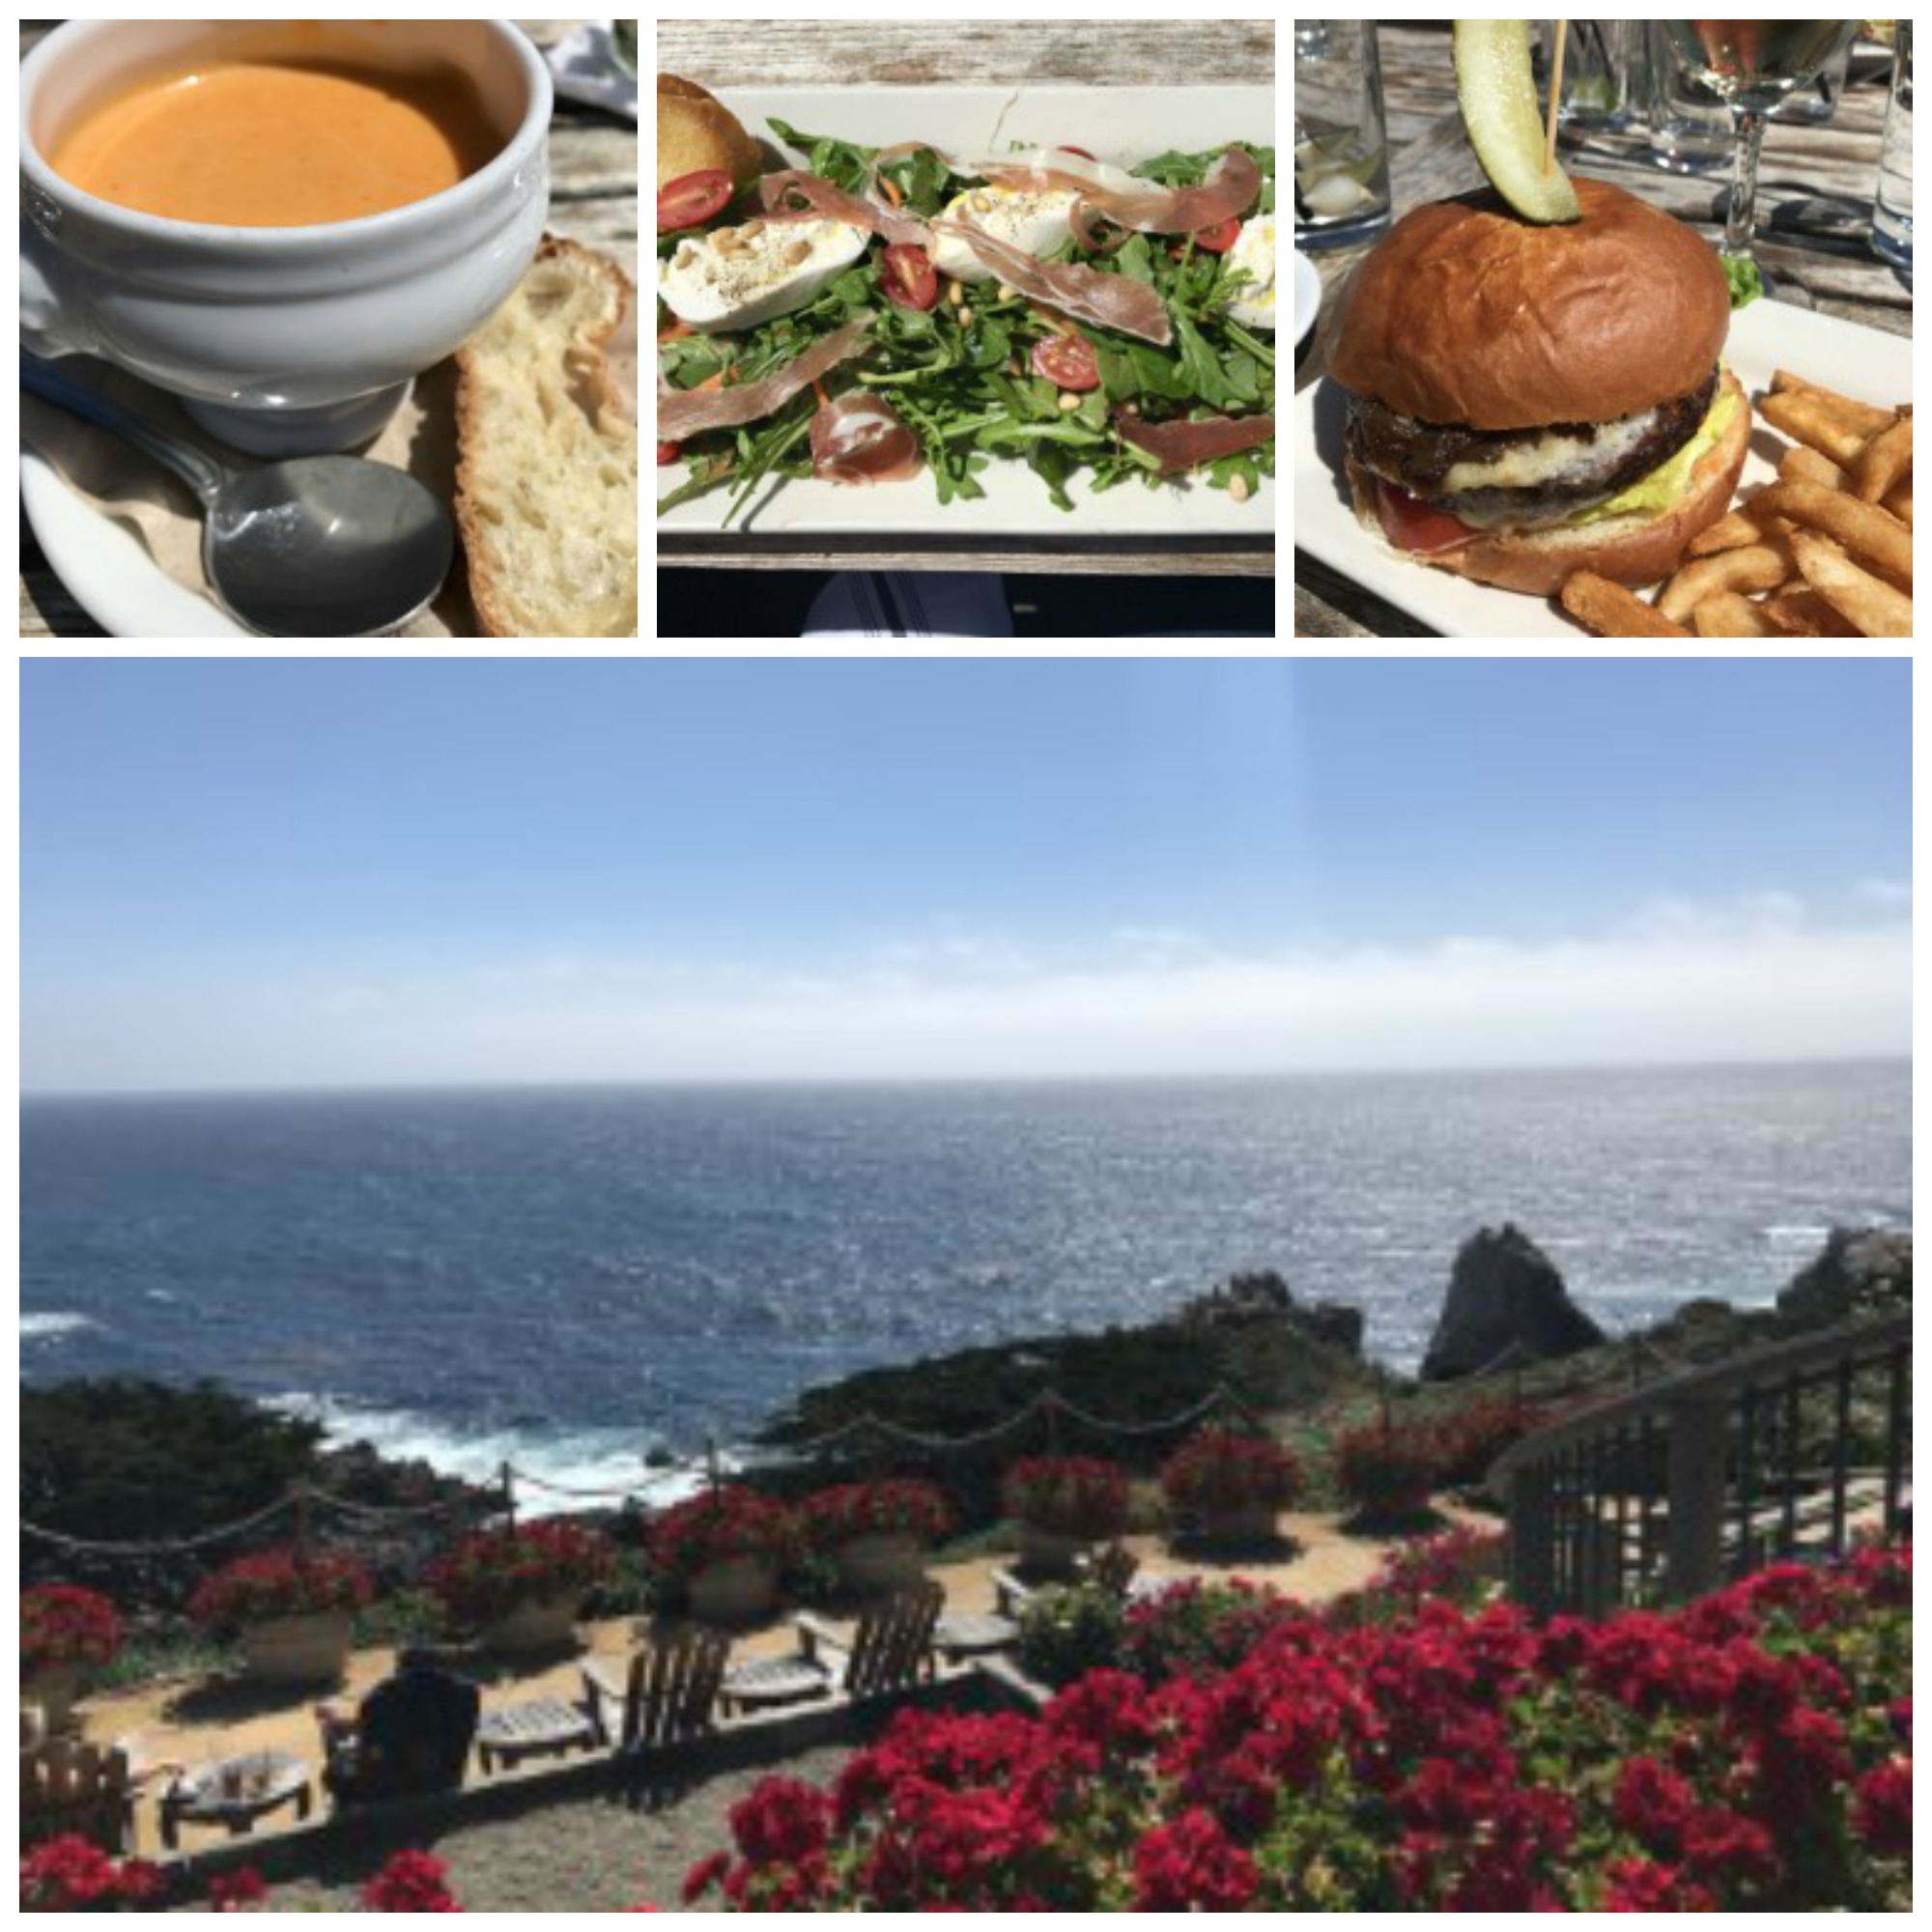 Rocky Point View and Food